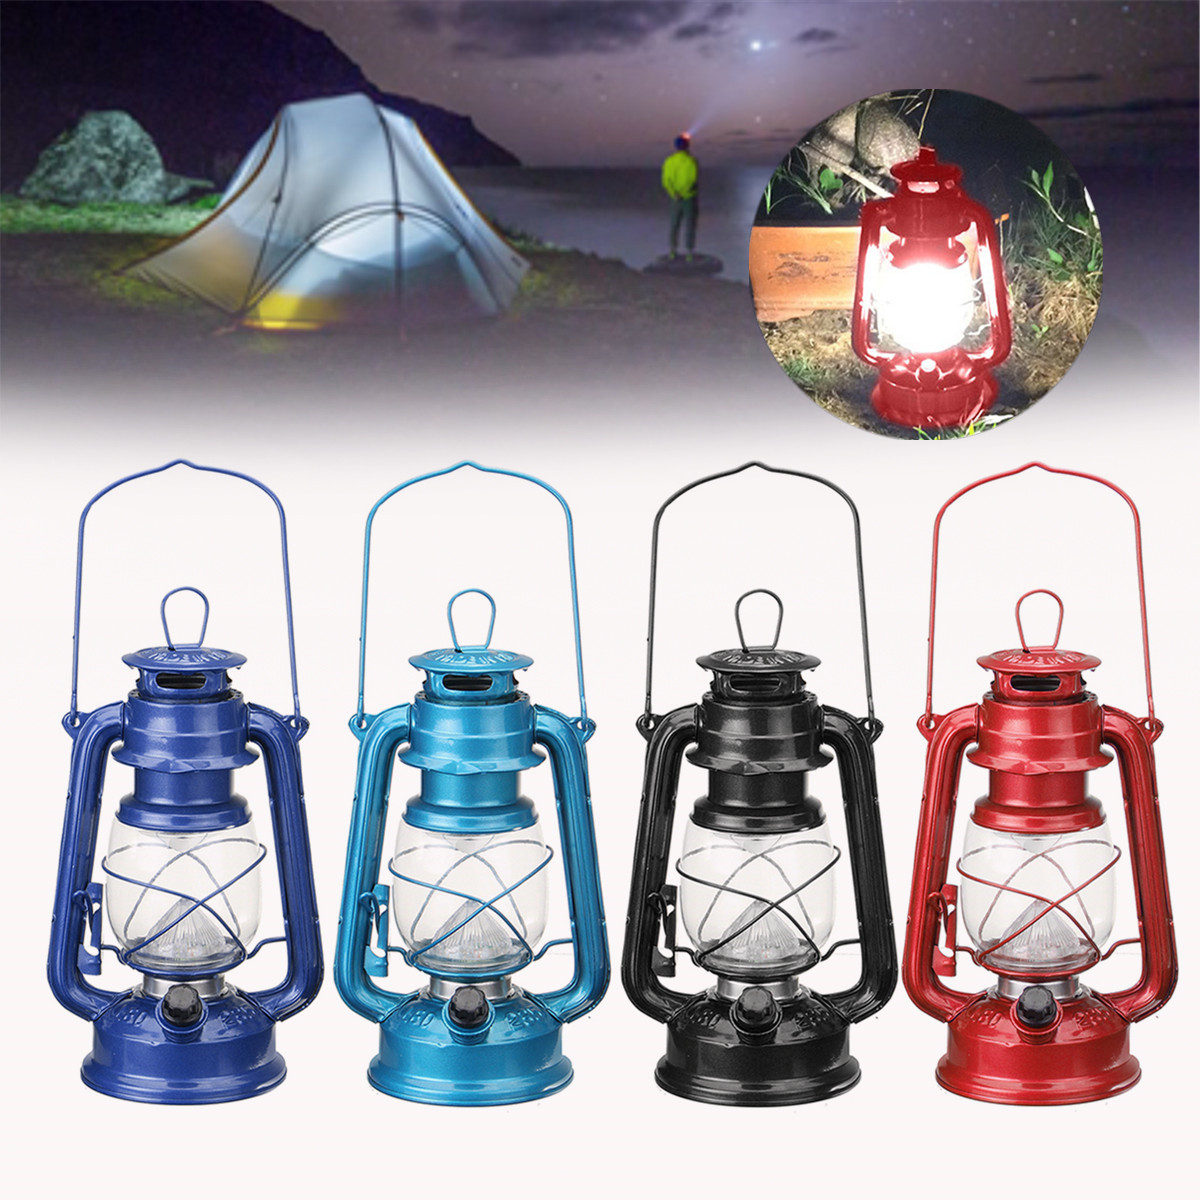 Indoor Lantern Lights: Vintage Style 15 LED Lantern Battery Operated Indoor